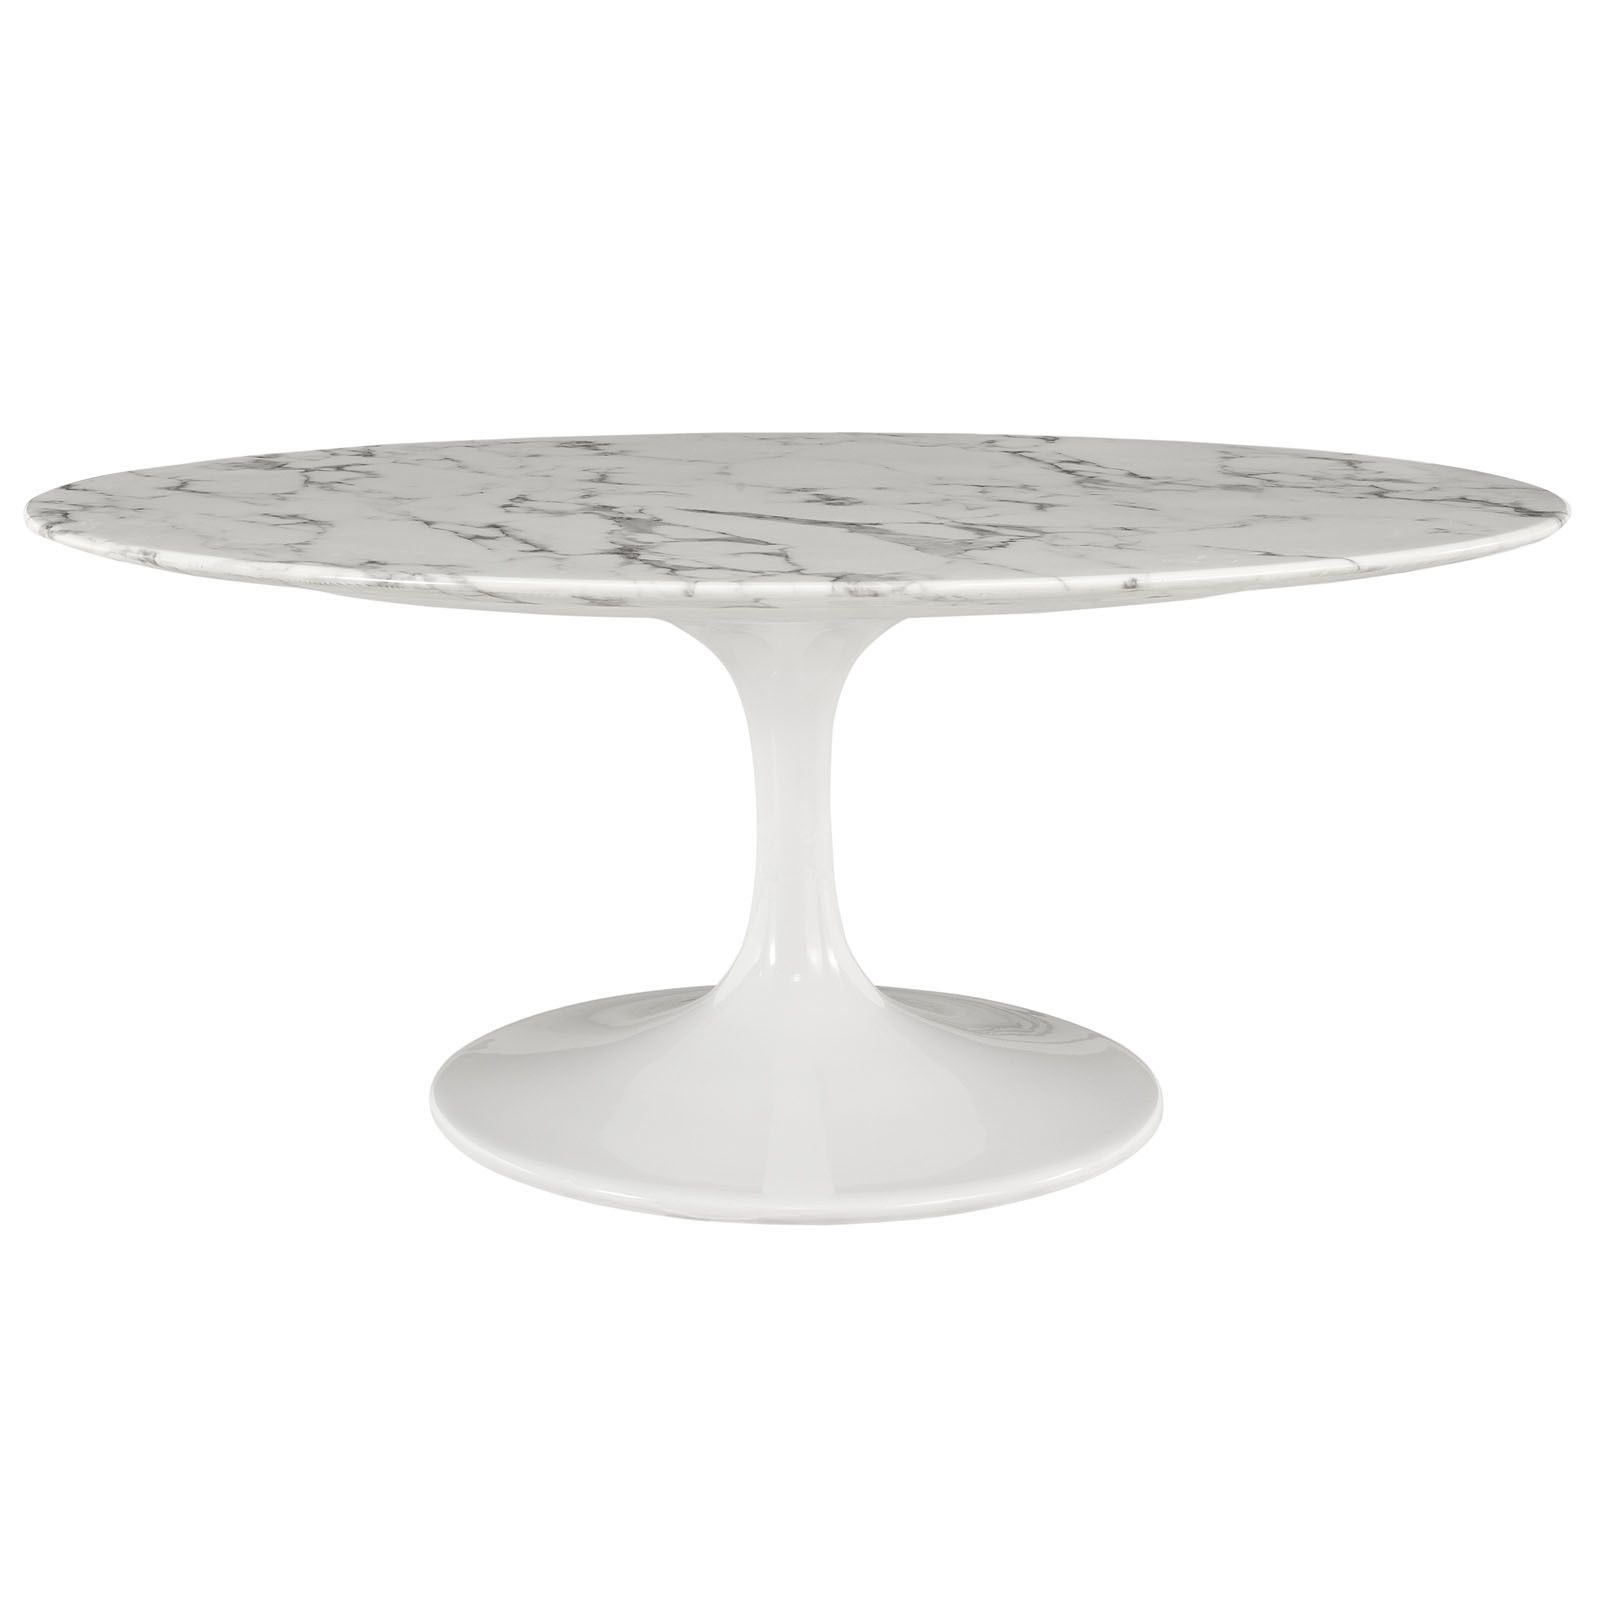 Saarinen Tulip Style 42 Oval Shaped Cultured Marble Coffee Table In W Oval Coffee Tables Coffee Table White Tulip Coffee Table [ 1600 x 1600 Pixel ]